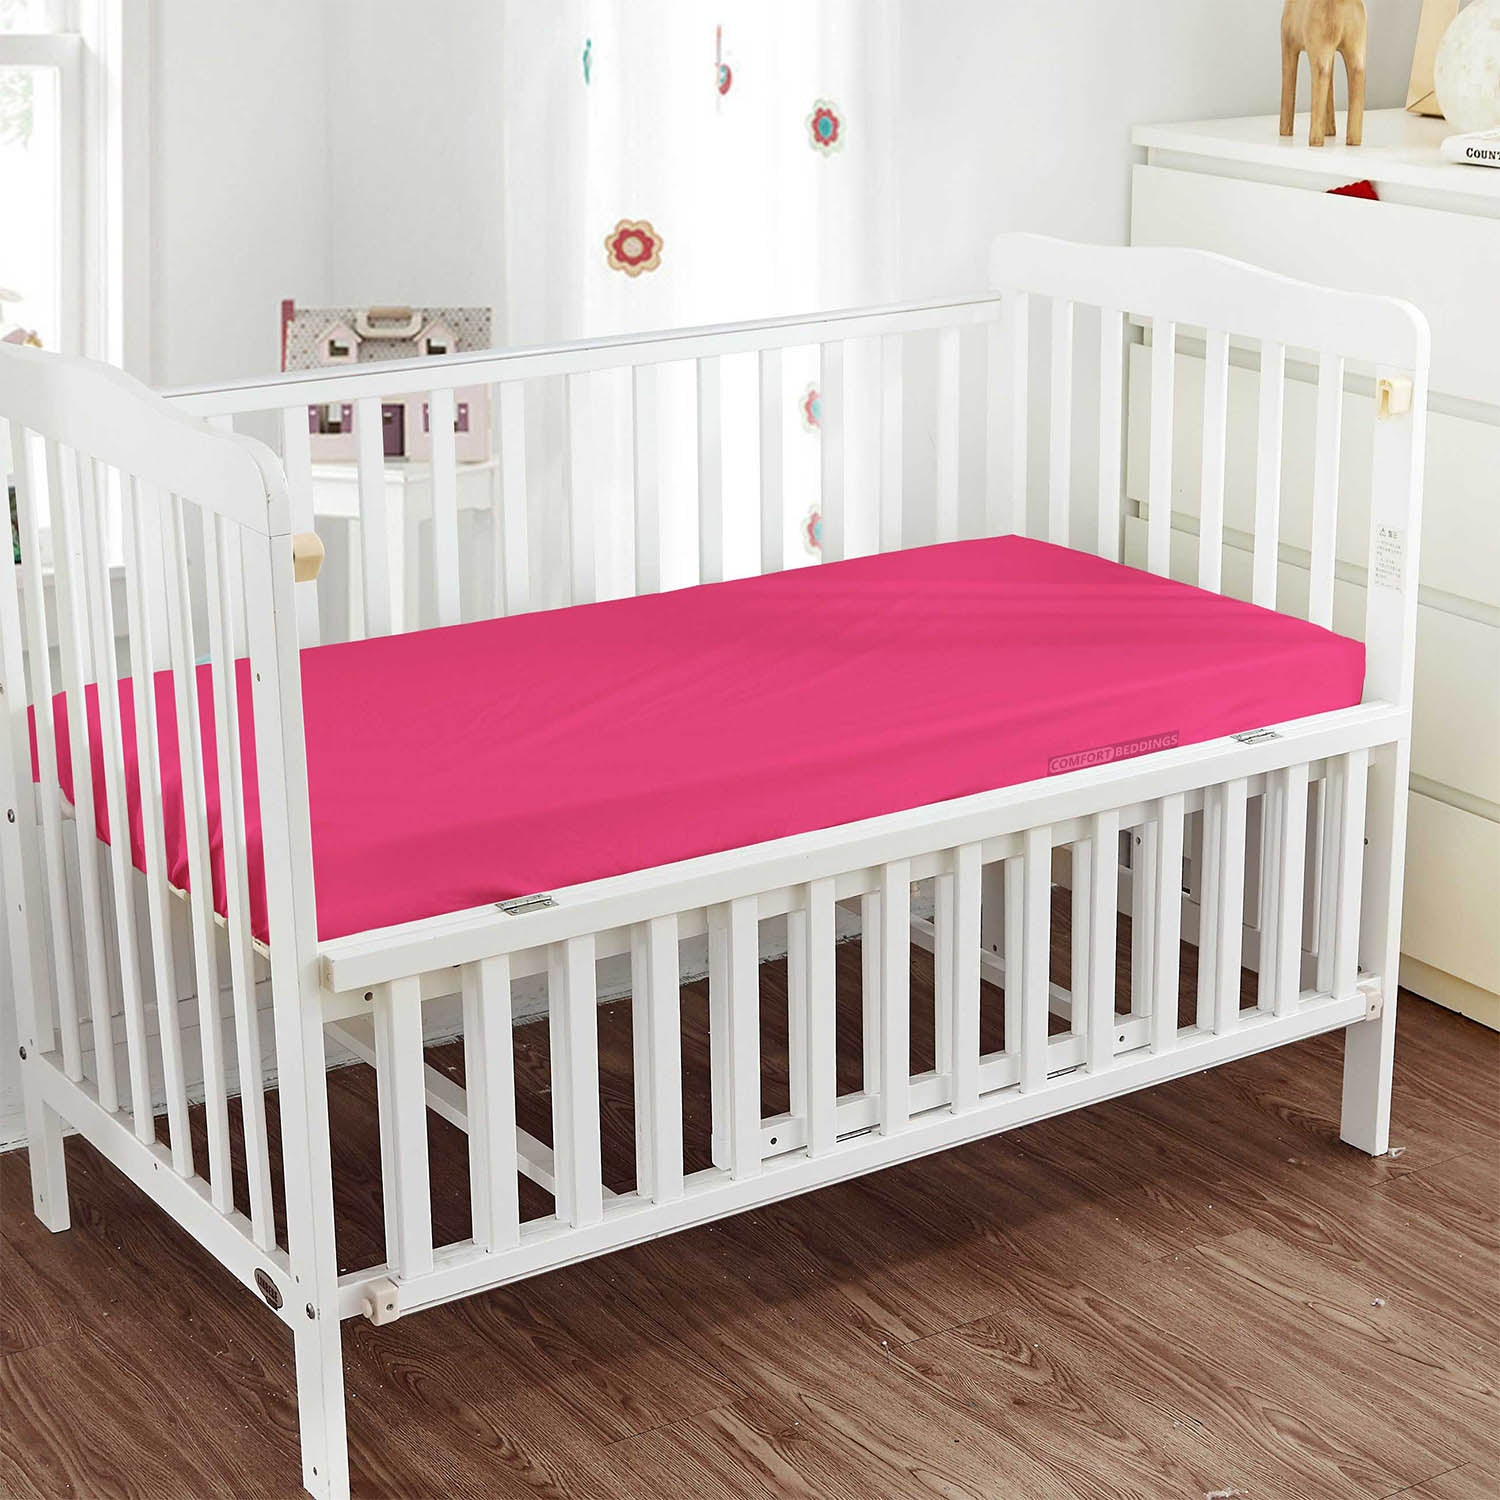 600TC Hot pink Fitted Crib Sheets